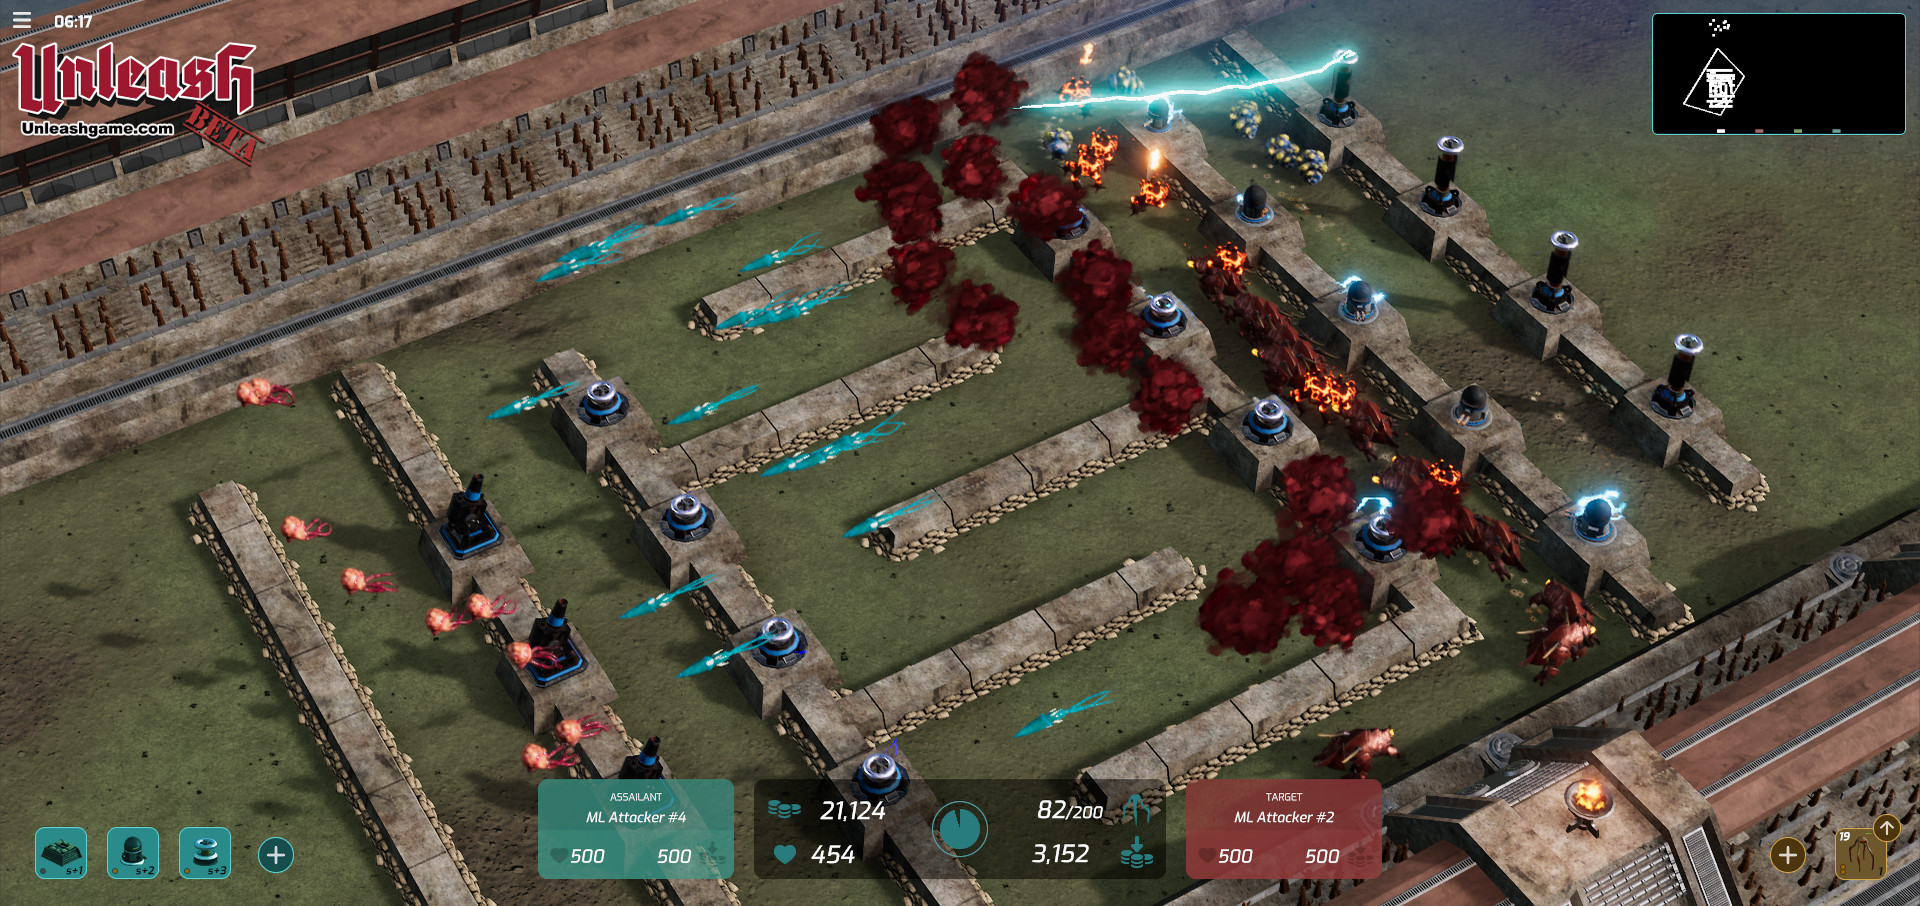 Unleash - a multiplayer Tower Defense game inspired by Warcraft 3